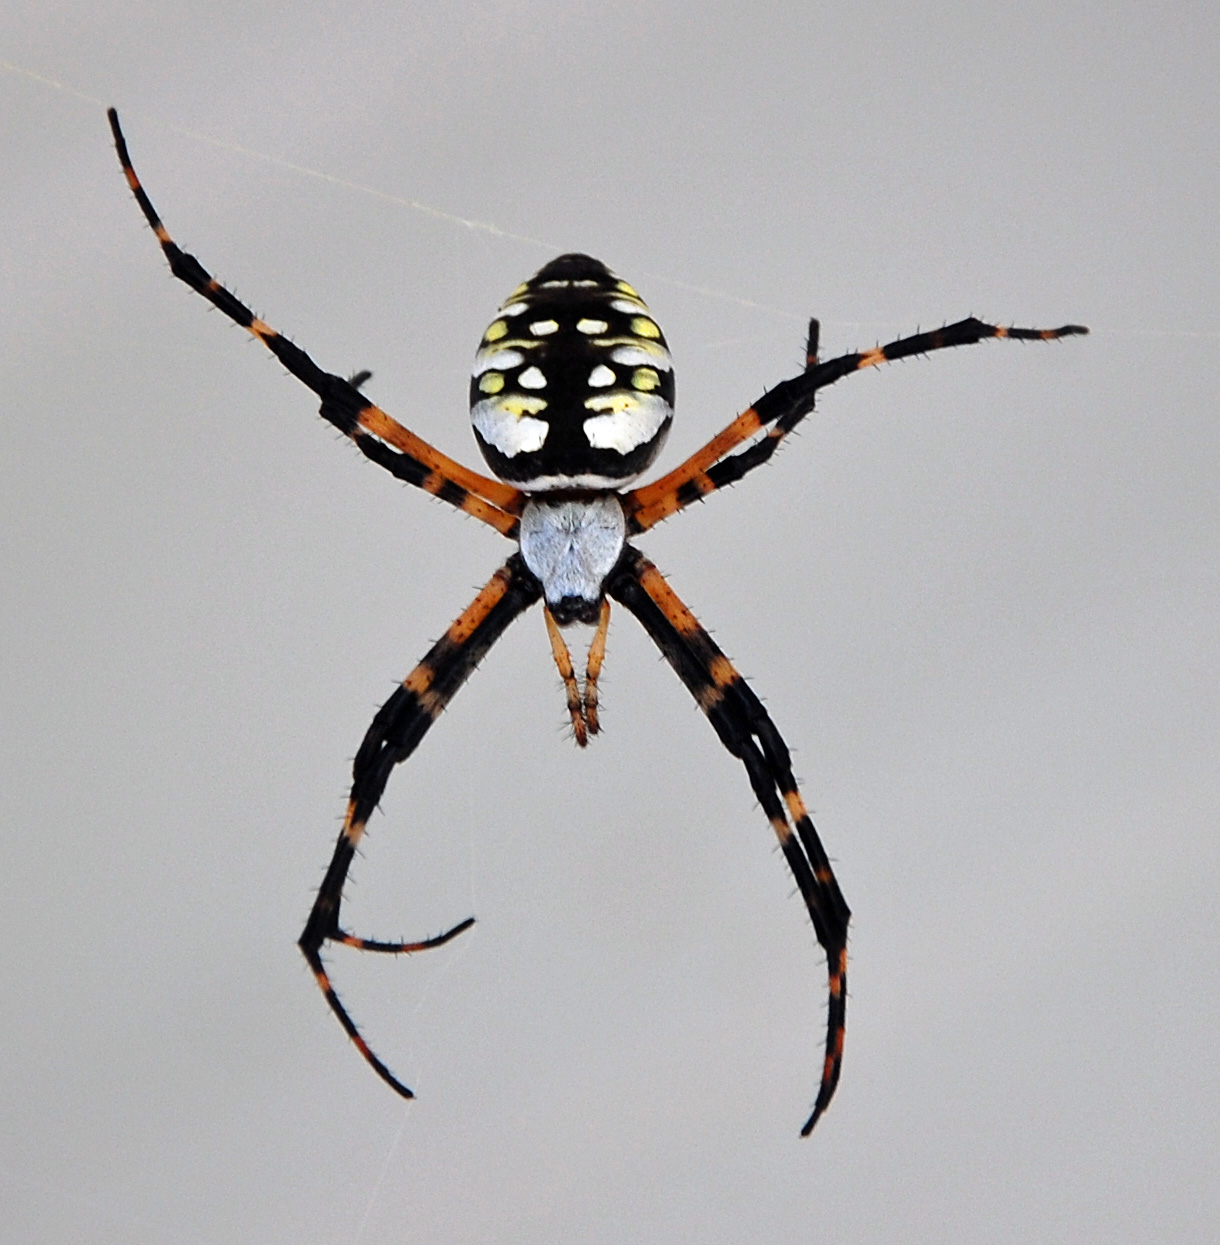 Black And Yellow Spider 2 Hd Wallpaper